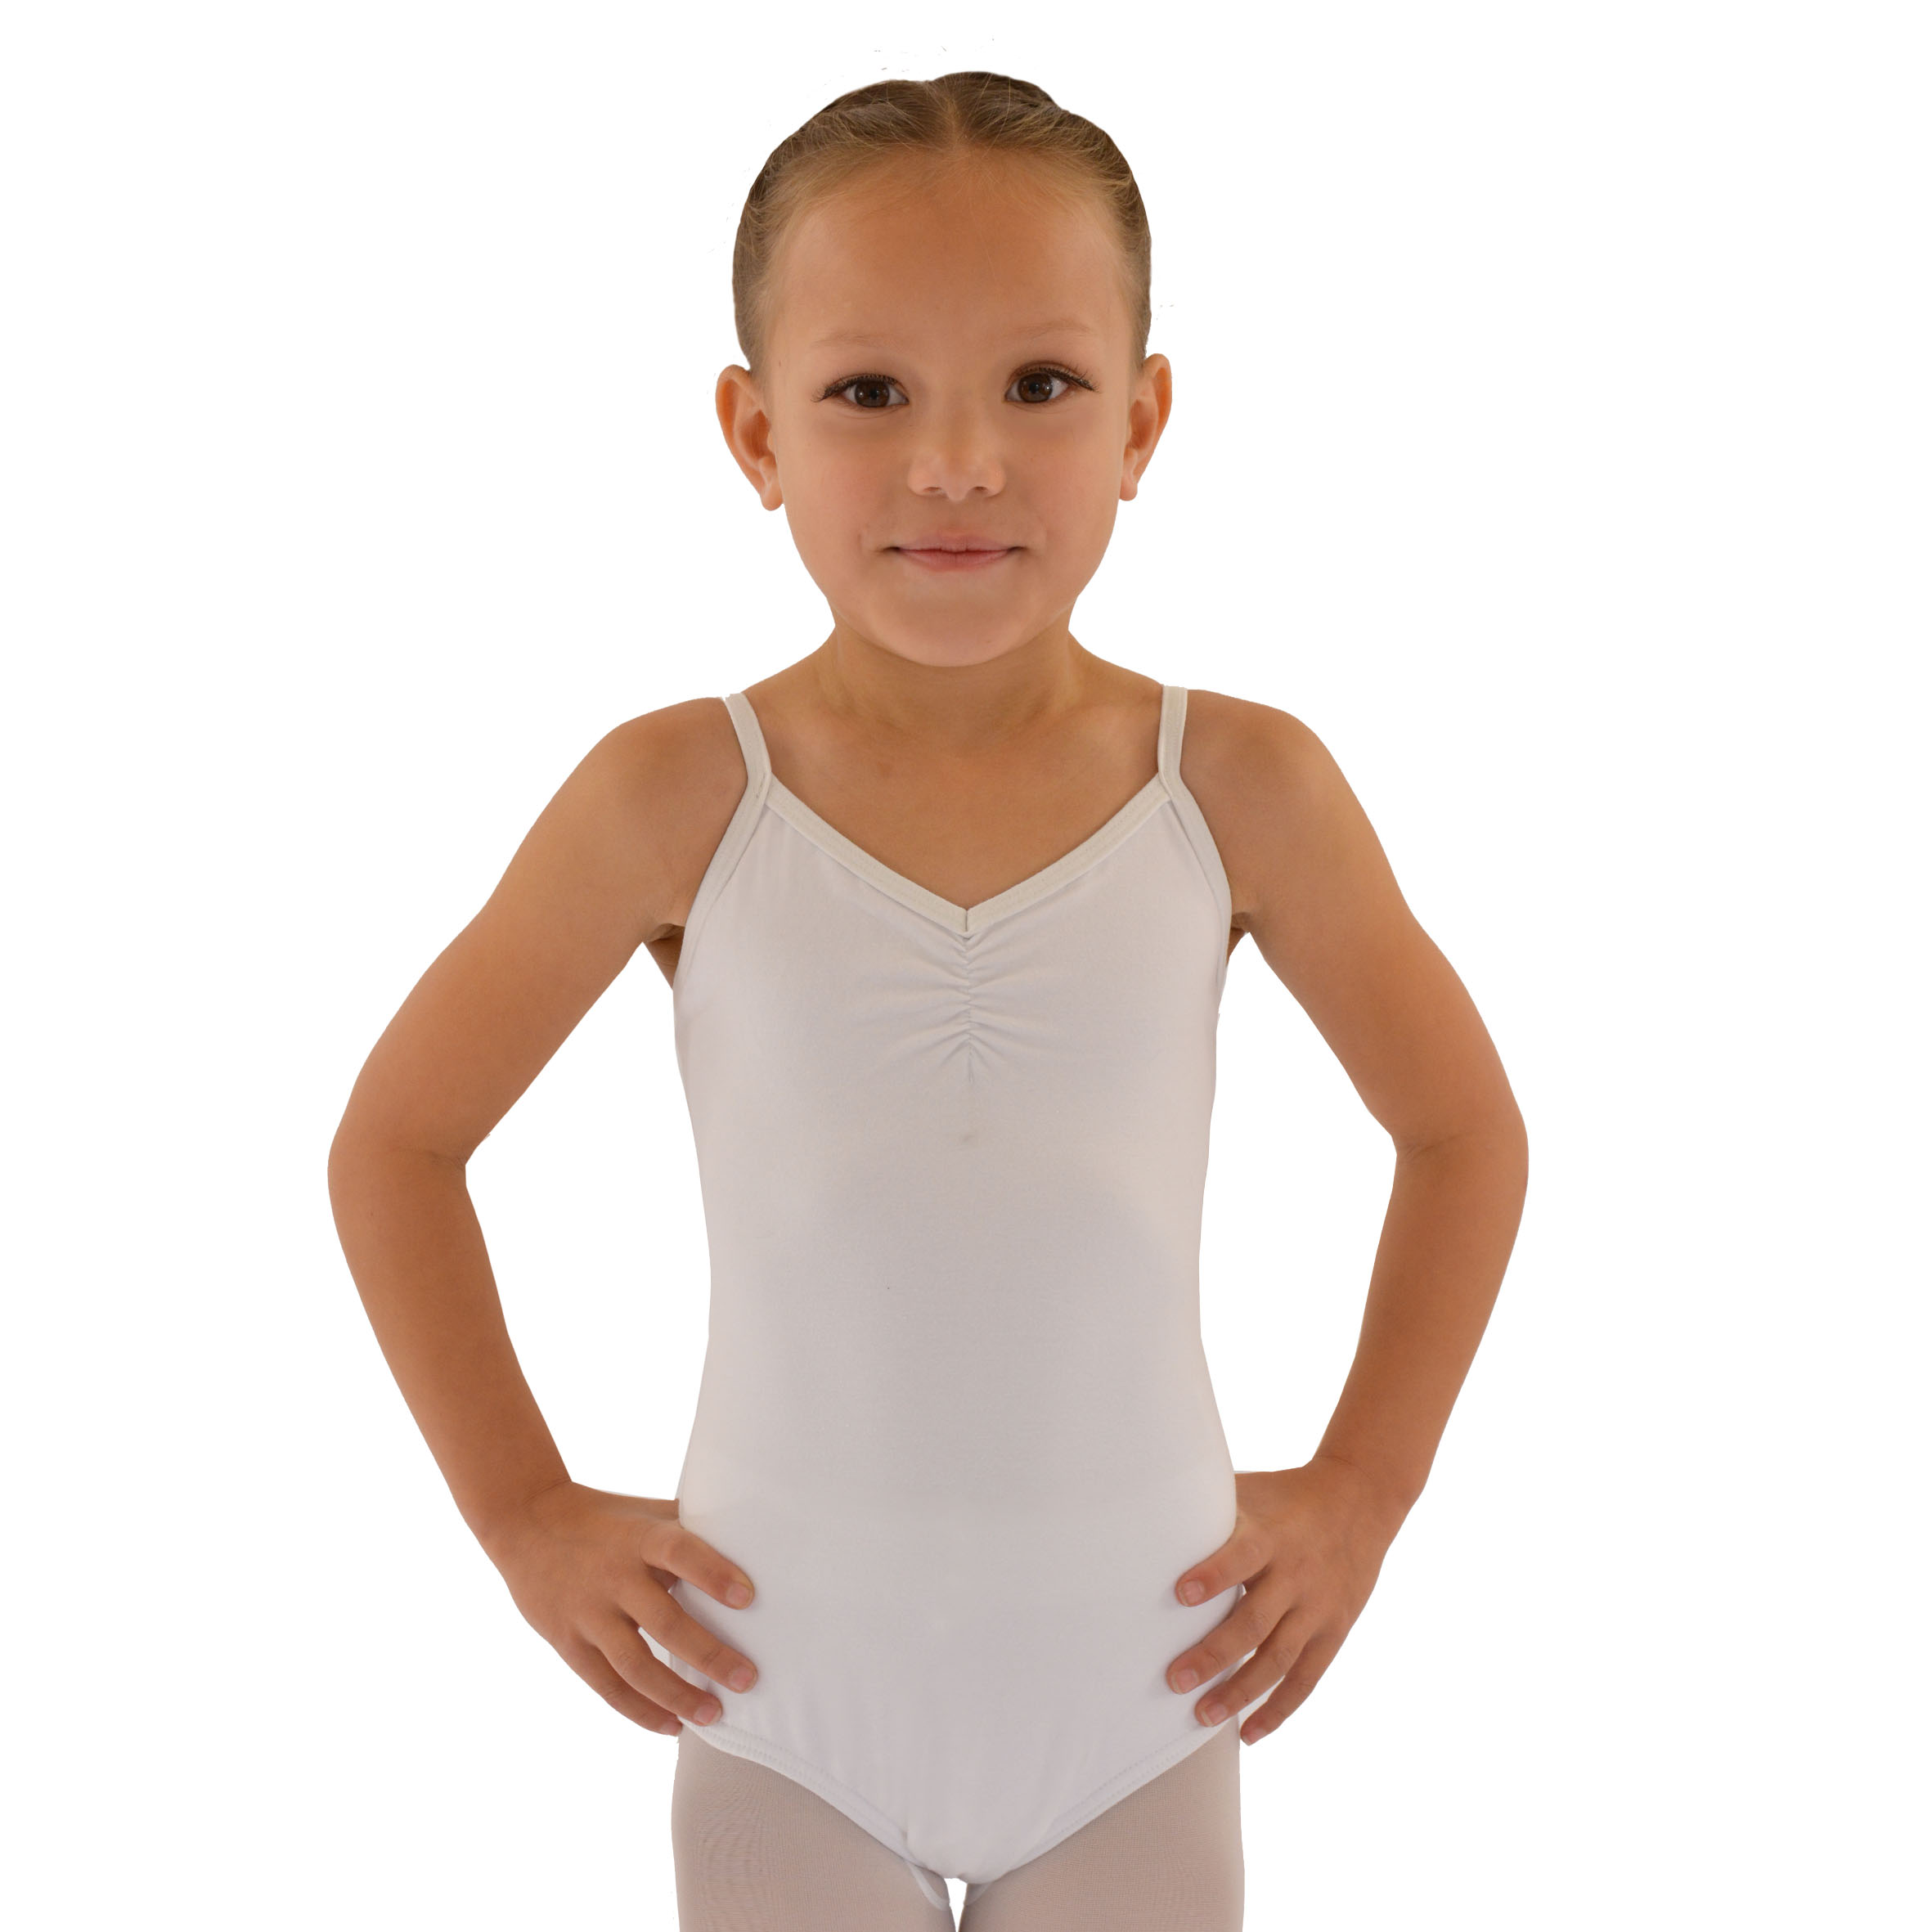 Sparkle tie-dye stretch velvet leotard has attached, adjustable nude shoulder straps and white spandex ballet legline trunks. Attached pancake tutu has top layer of .